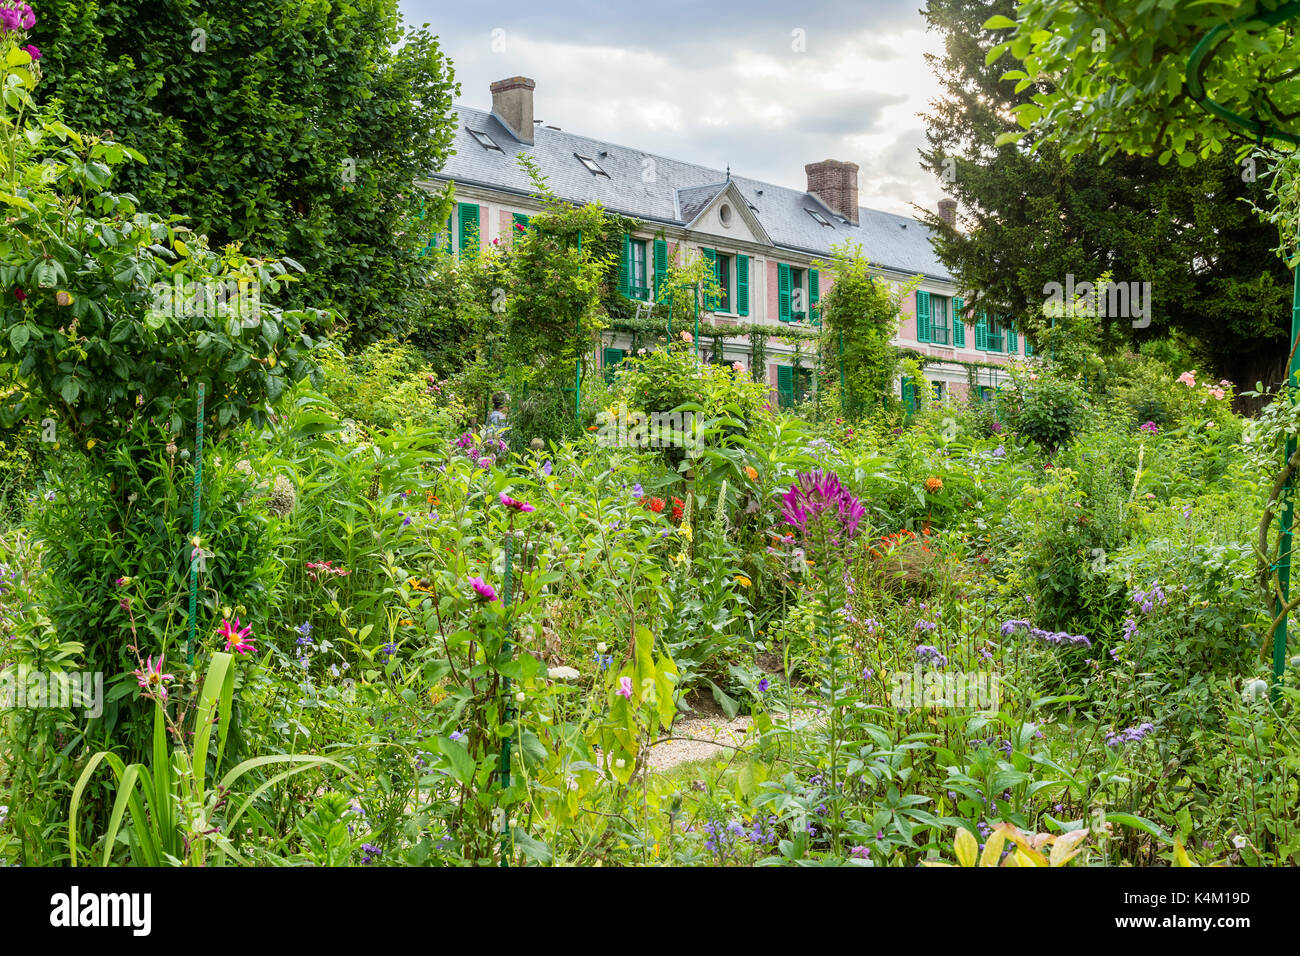 Monet garden giverny stock photos monet garden giverny for France jardin